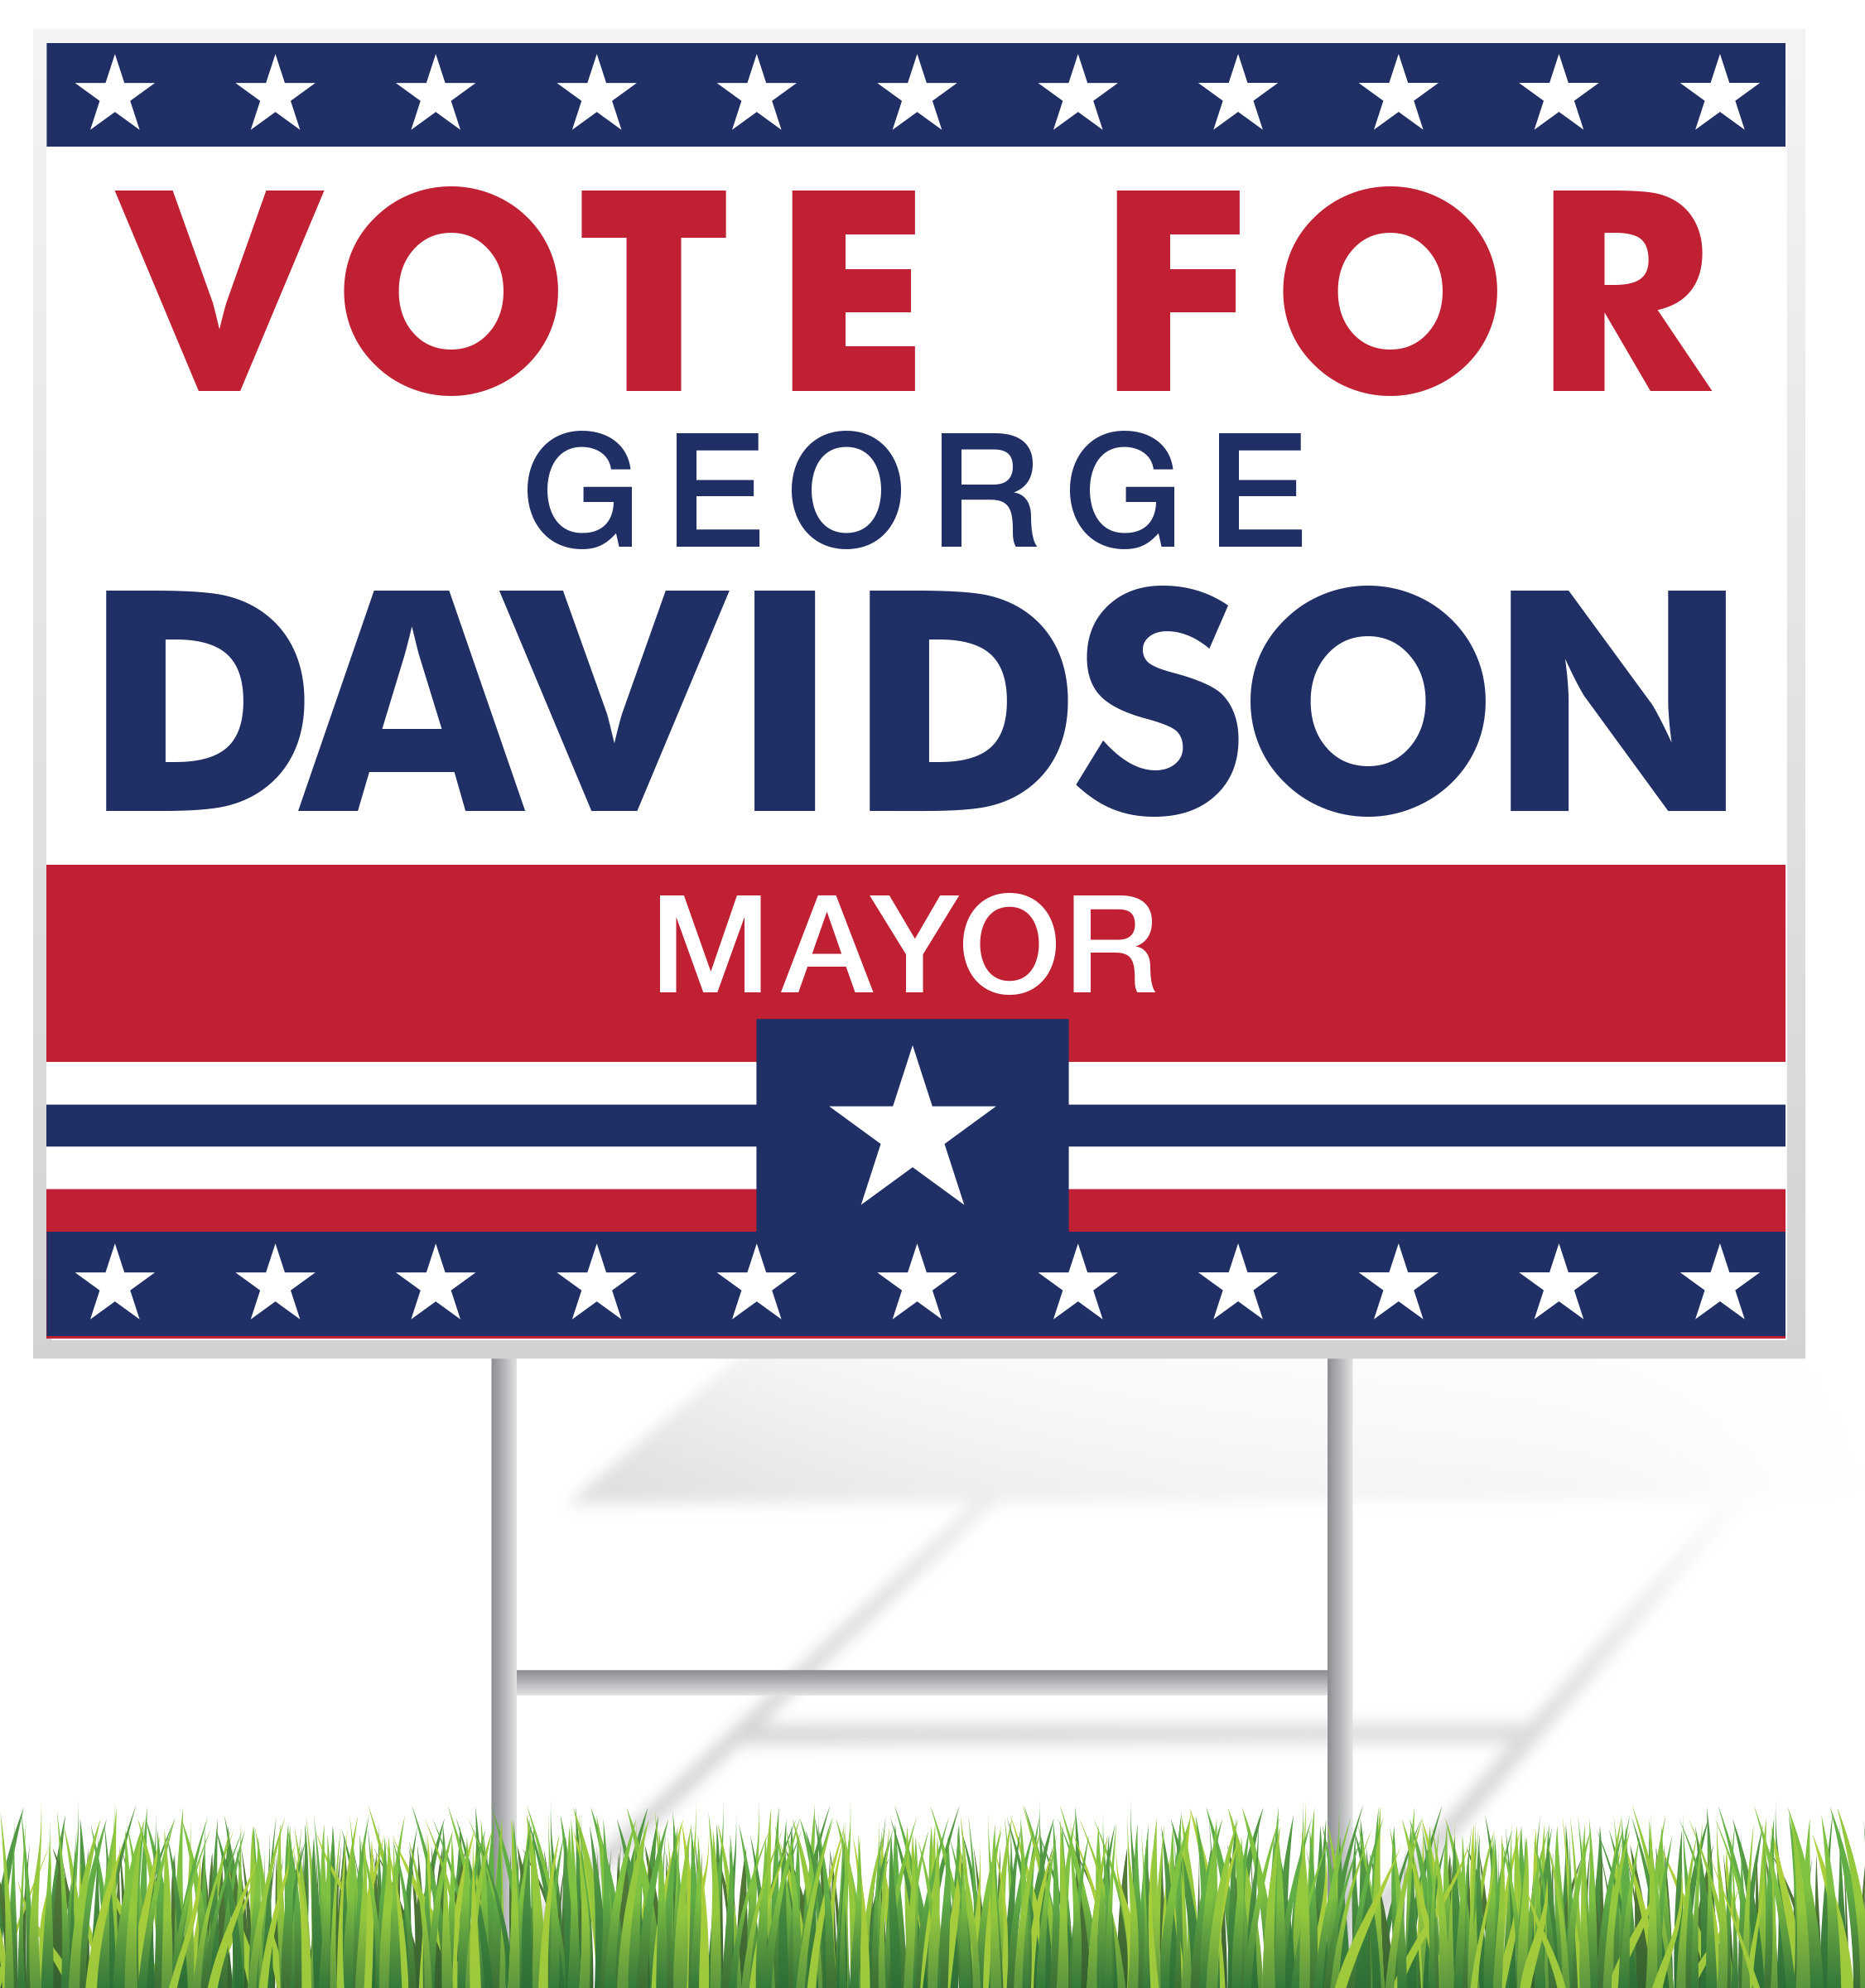 Campaign Lawn Sign Example | LawnSigns.com